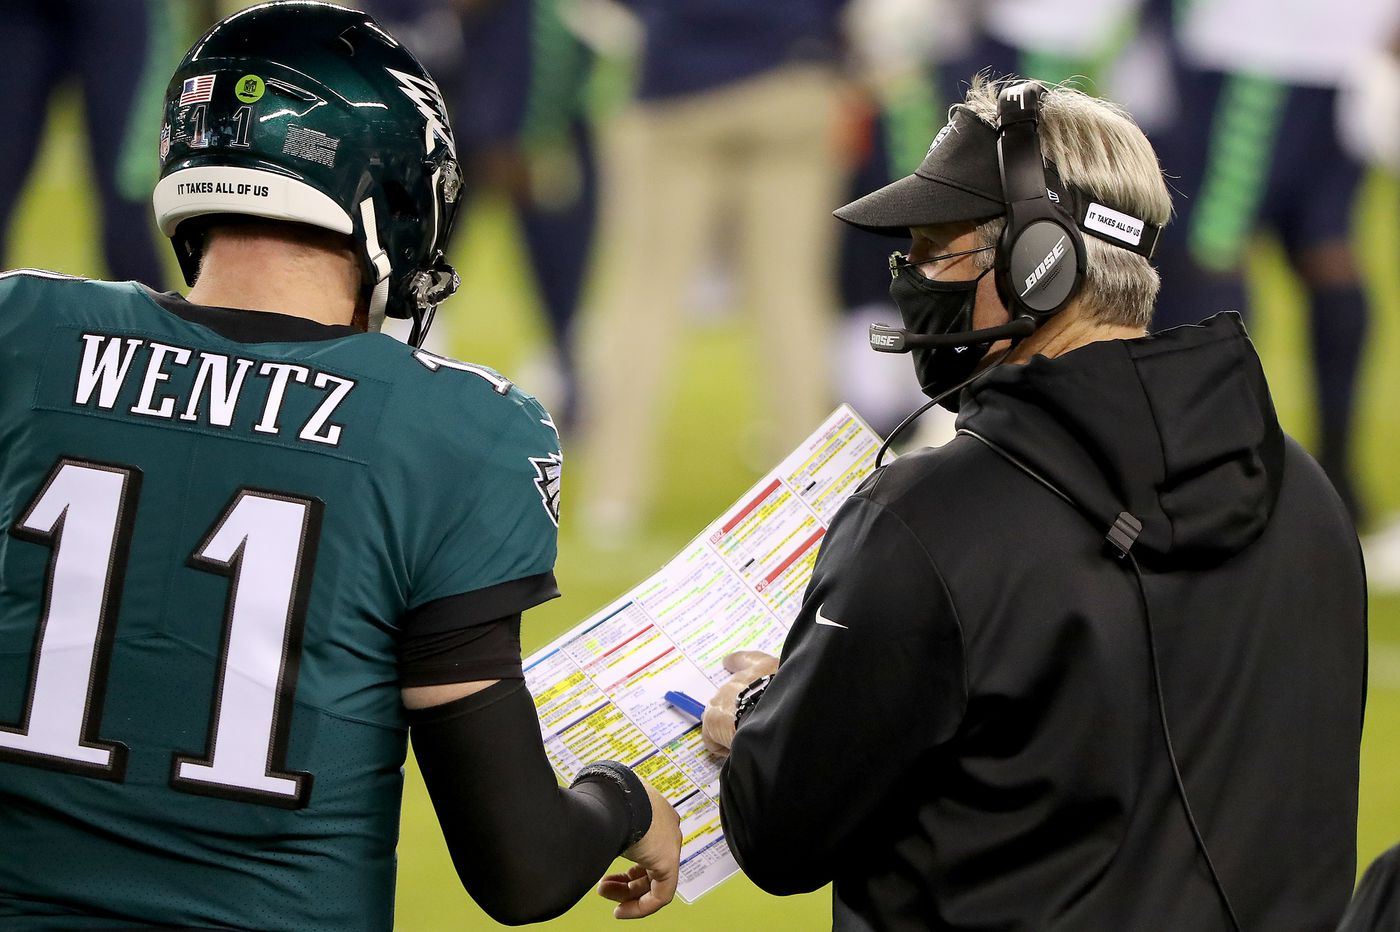 Doug Pederson has already doled out some play-calling and could give more to Press Taylor, sources say